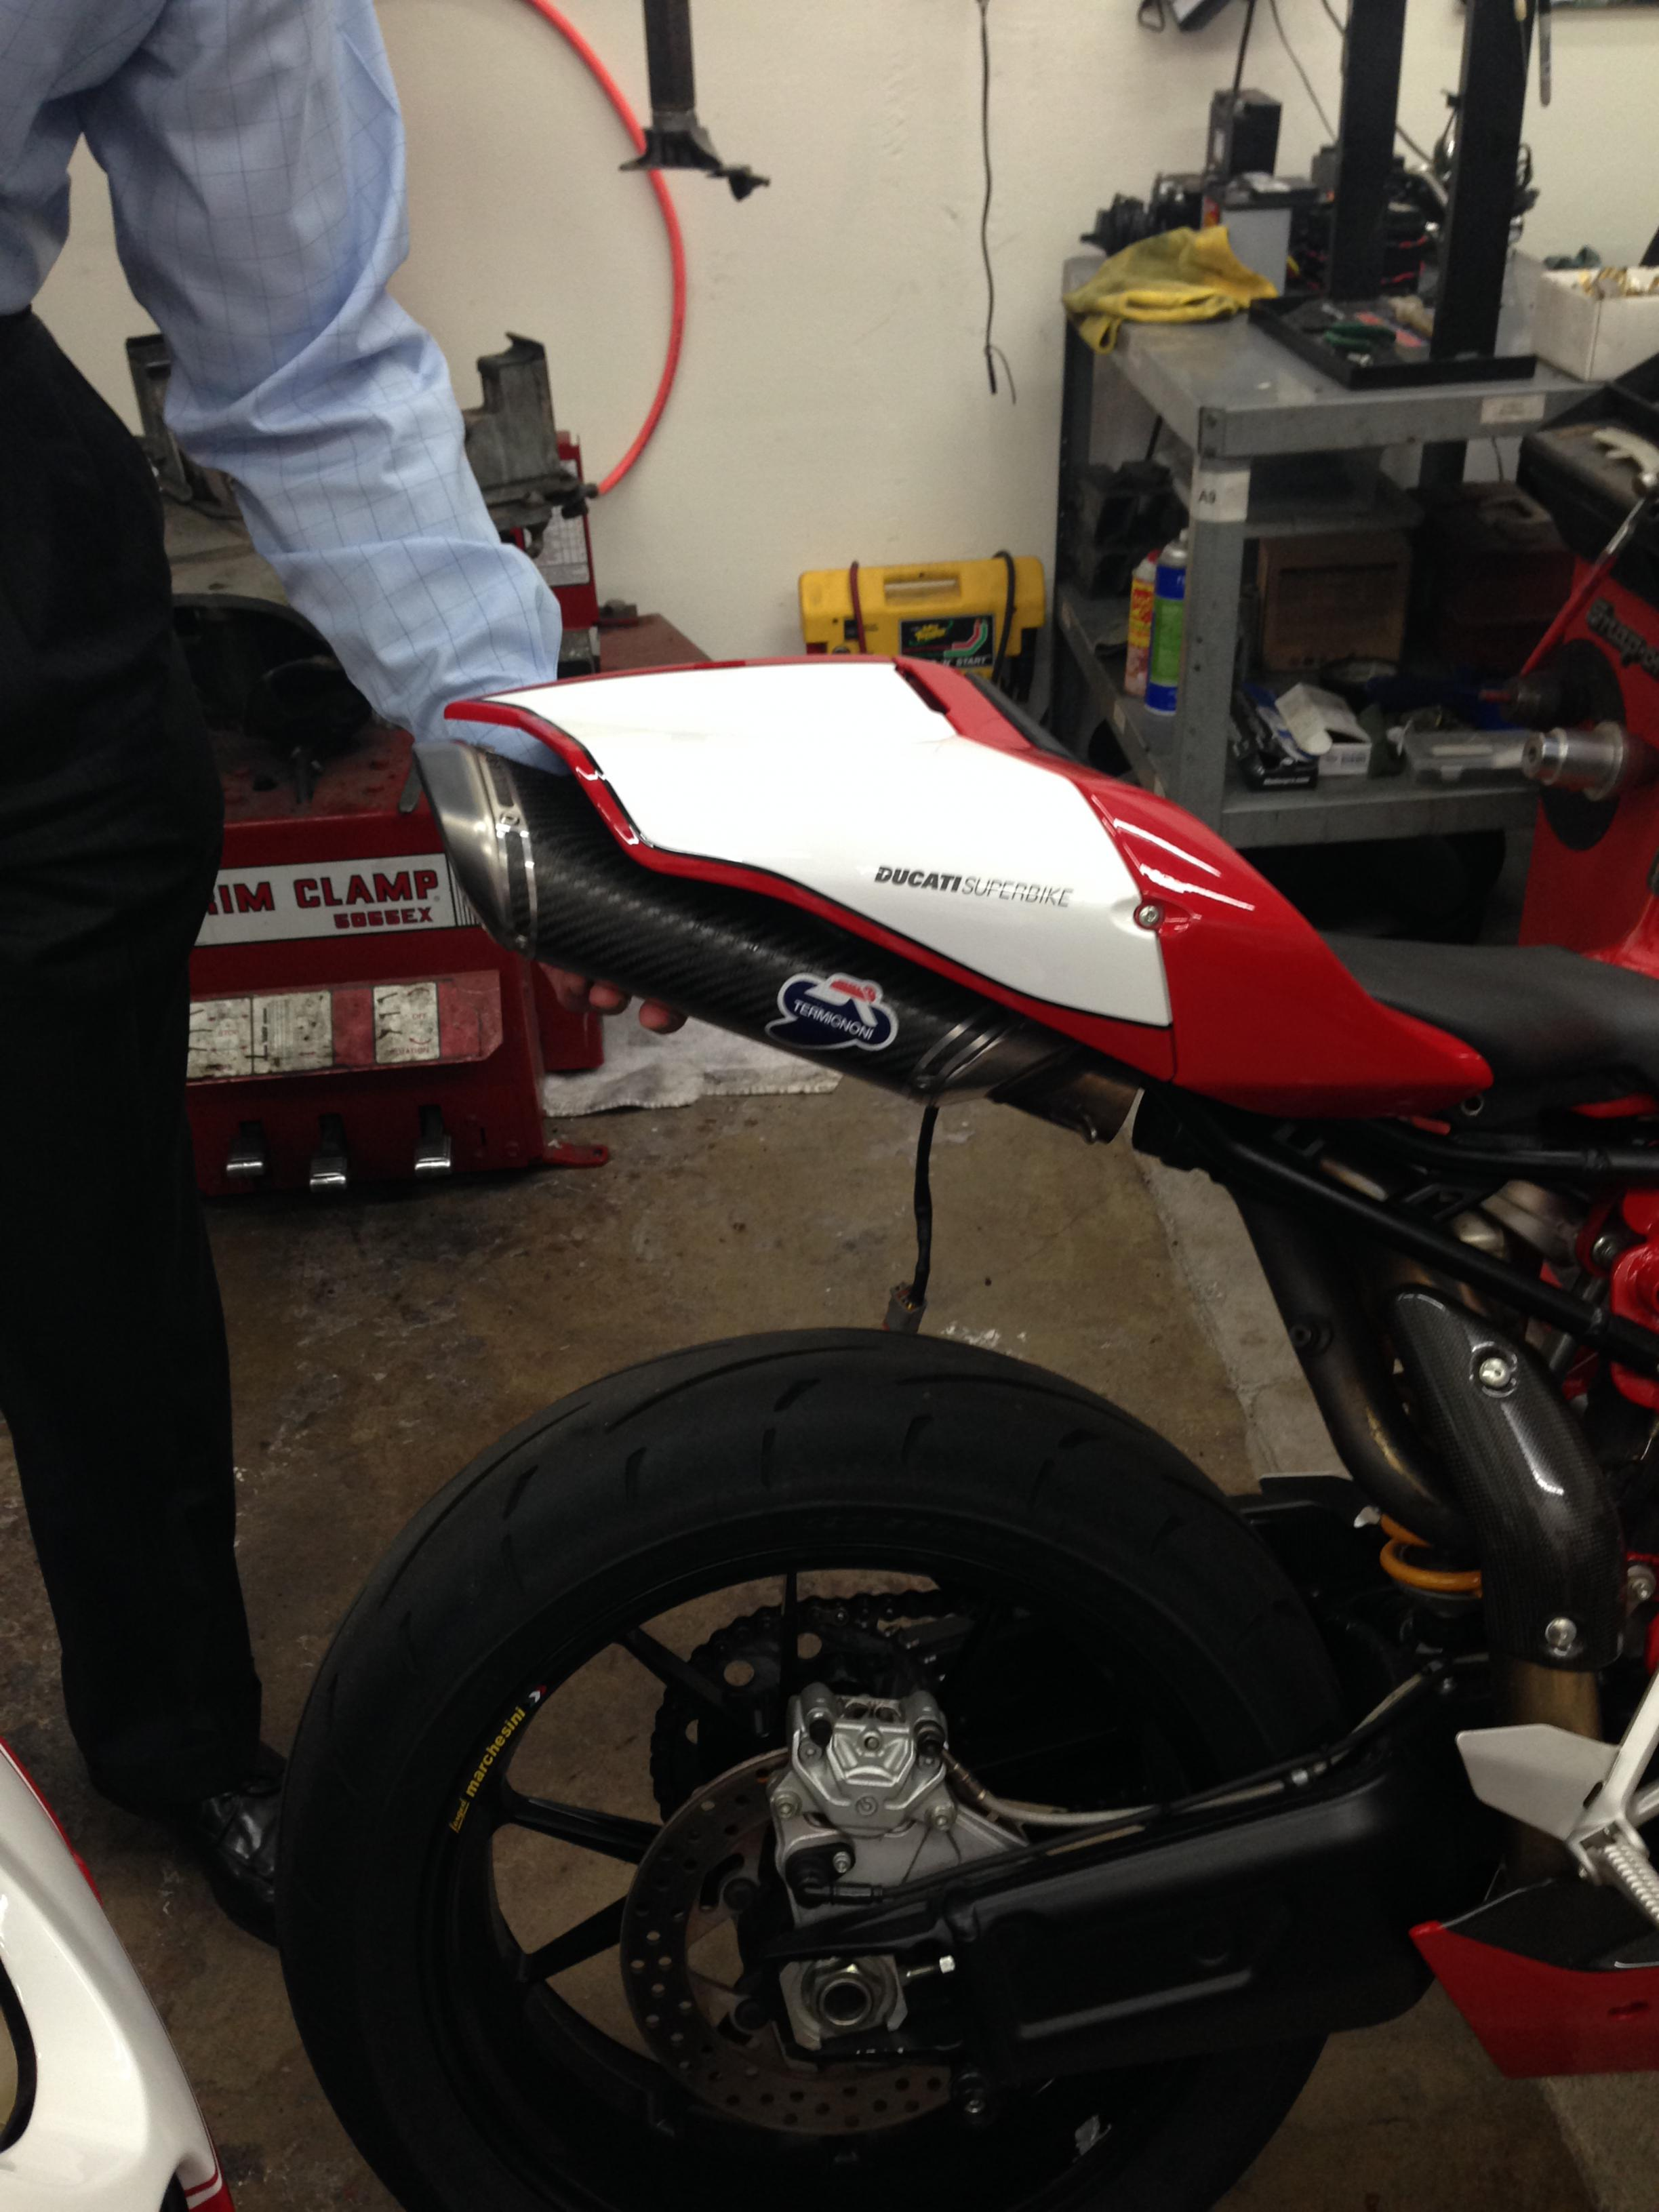 999r with a termignoni 848 slip on exhaust - ducati.ms - the